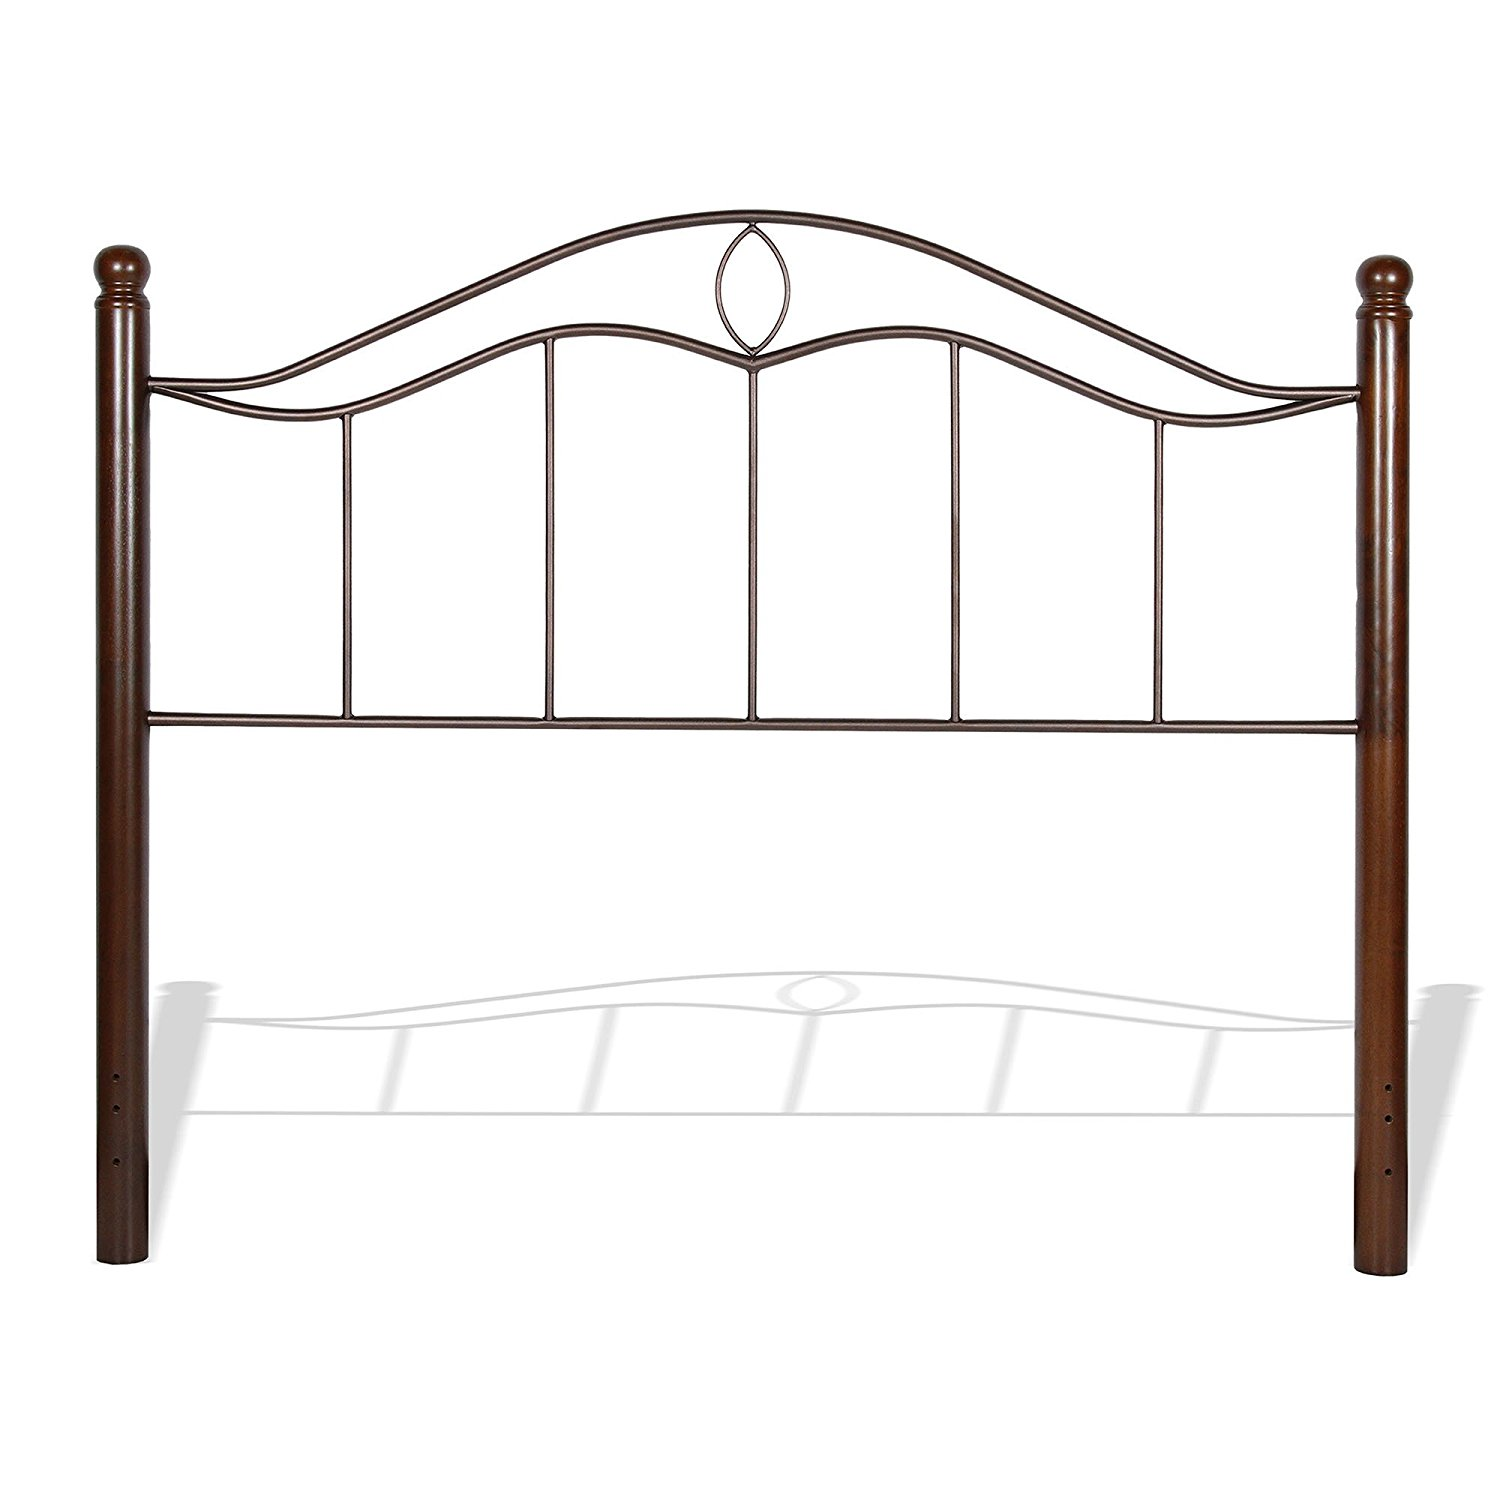 """Fashion Bed Group Pedestal Bed Base 850 with 6.25"""" Pewter Steel Frame and Detachable Bolt-On Headboard Brackets, Queen"""